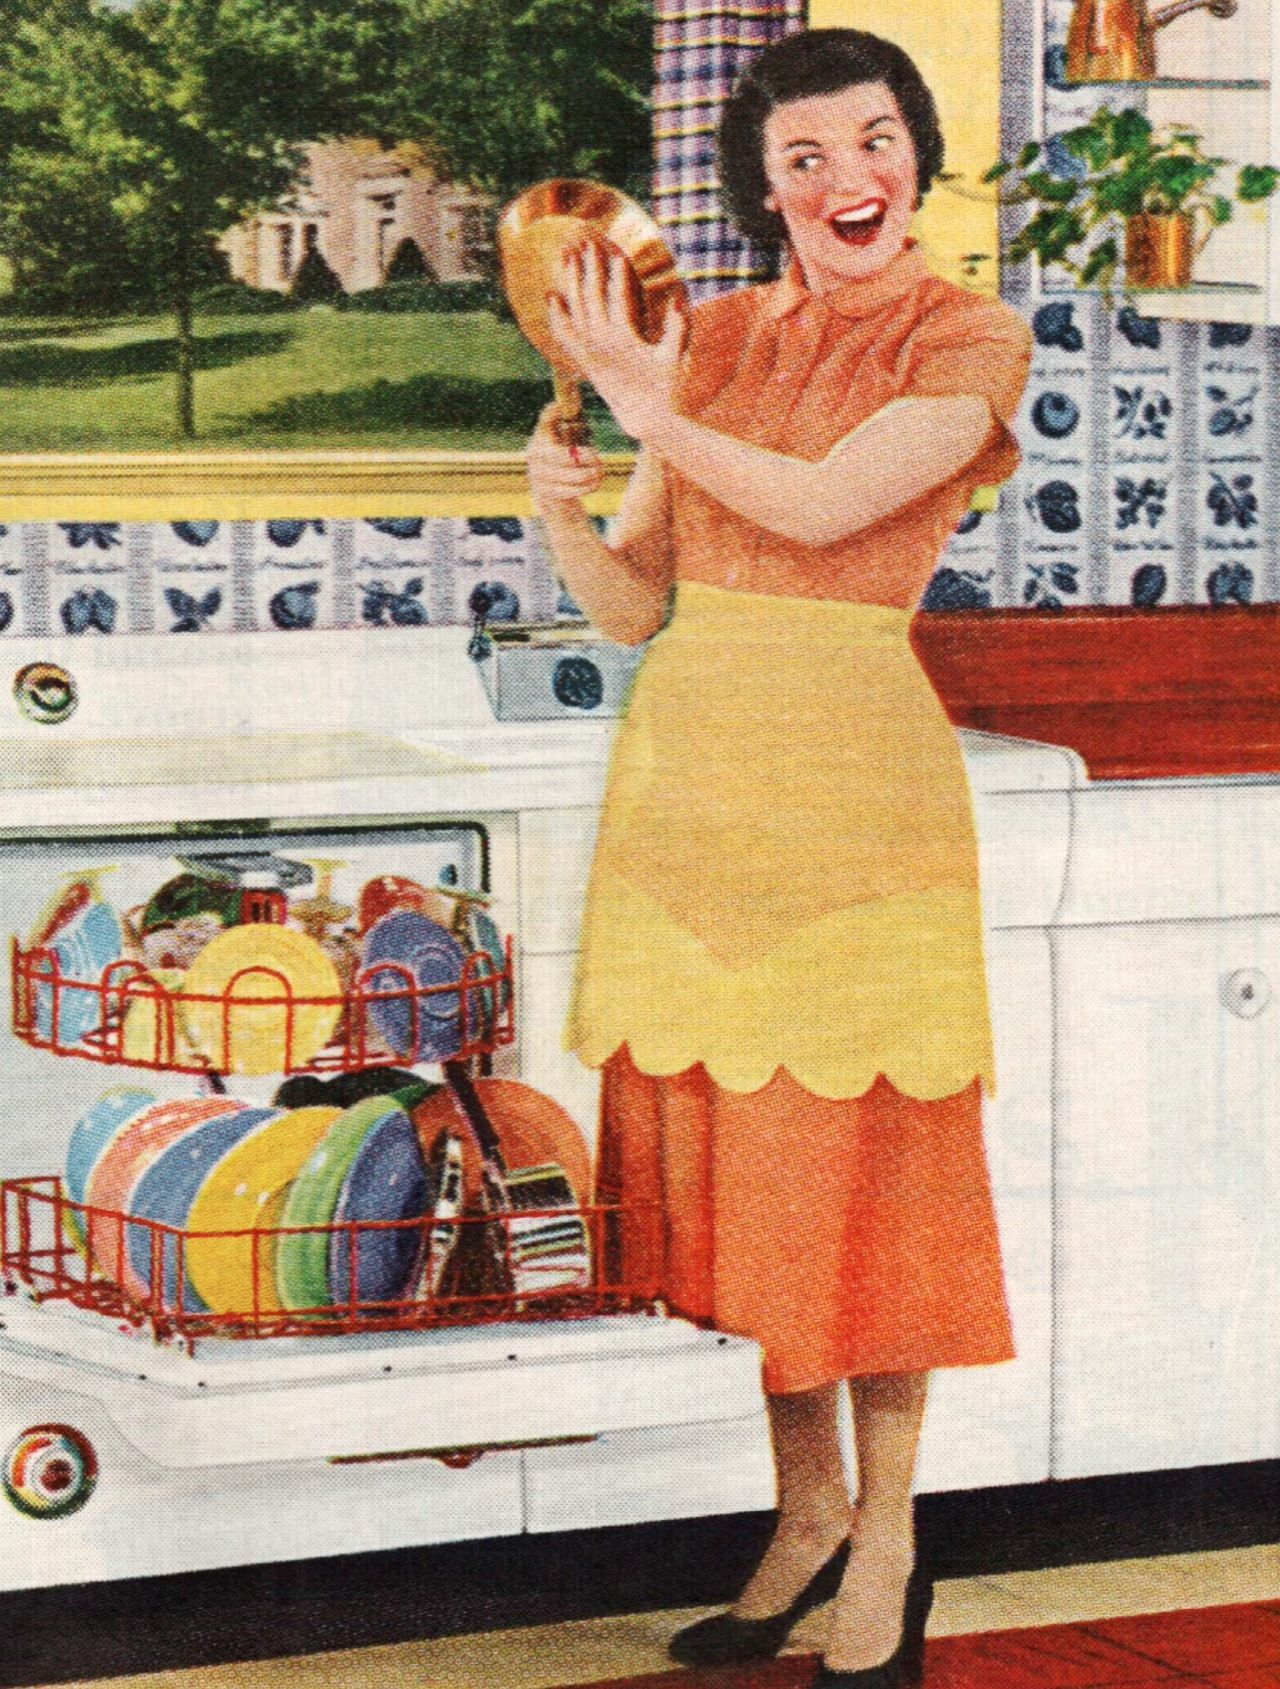 A dishwasher full of Harlequin dishes!